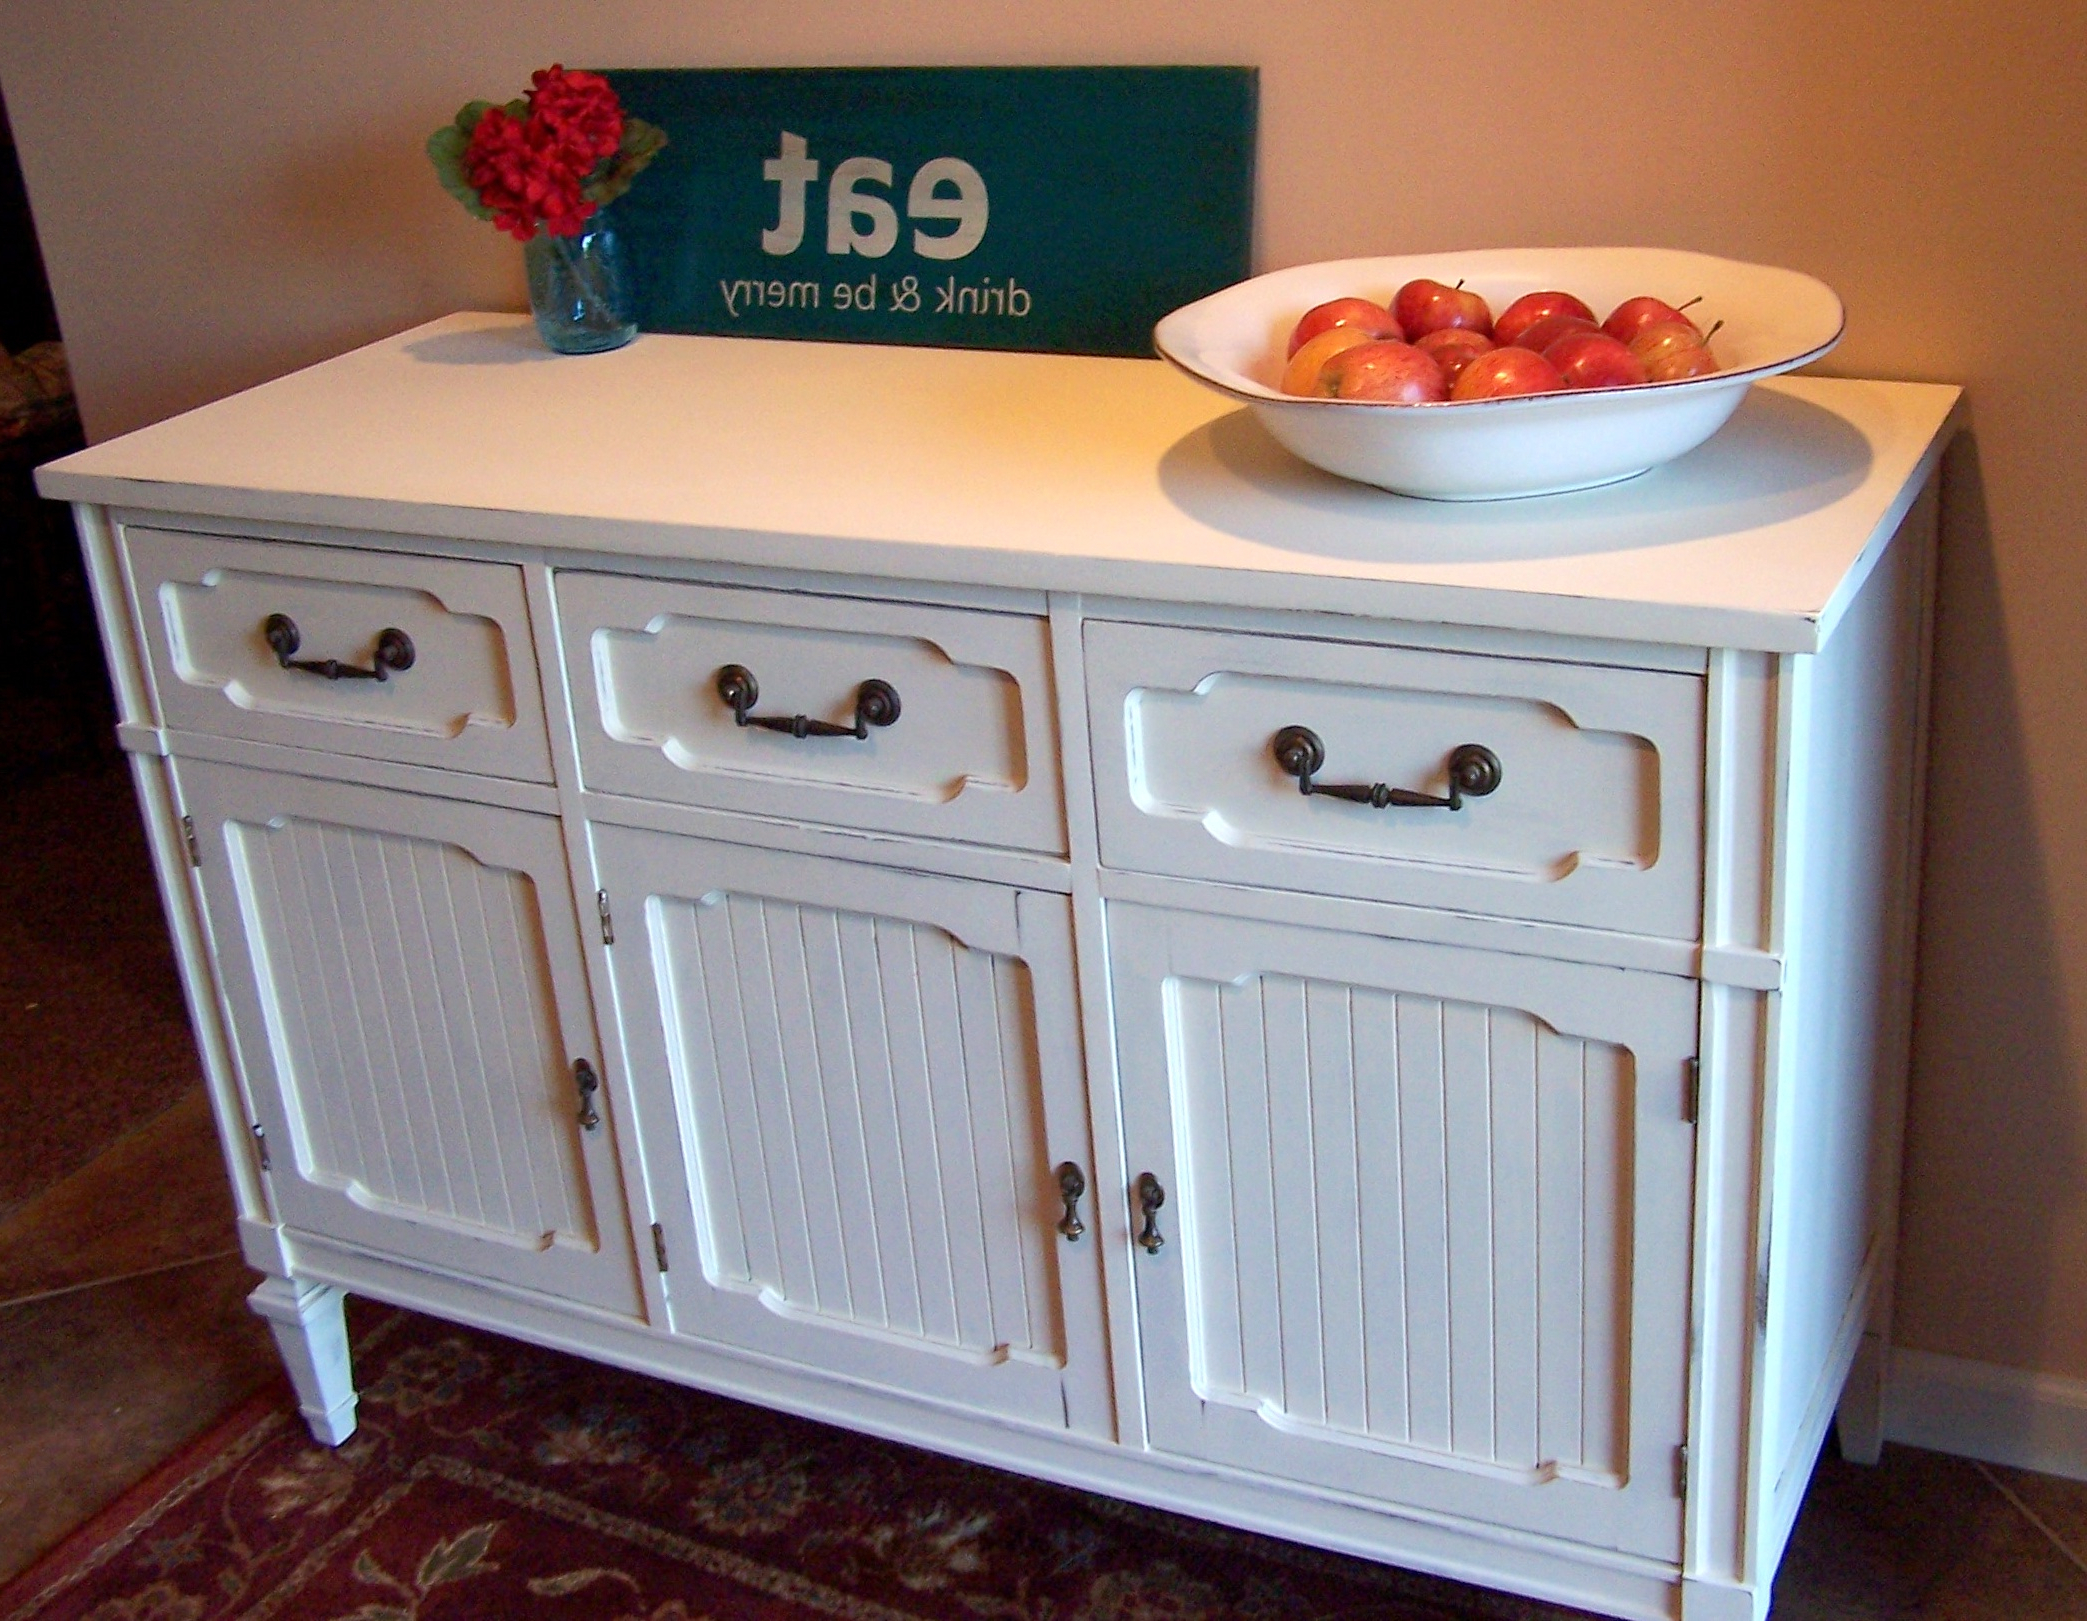 Antique White Sideboards In Recent White Buffet Sideboard Brilliant Or Fresh On Old Urban With Regard (Gallery 11 of 20)